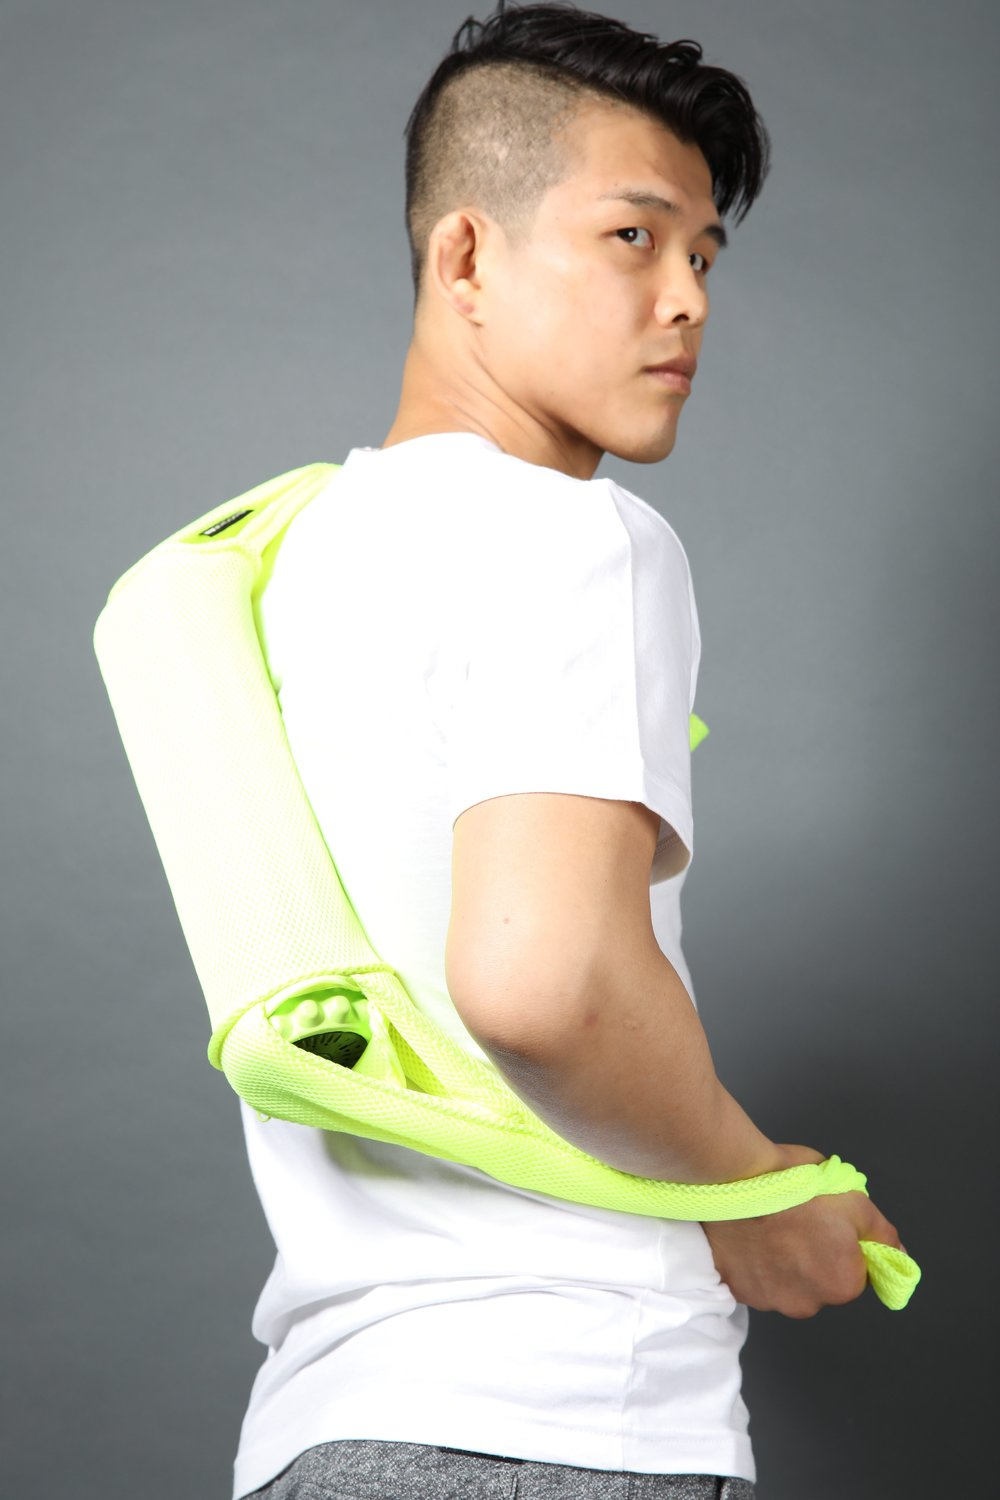 DOCTOR AIR 3D massage roll